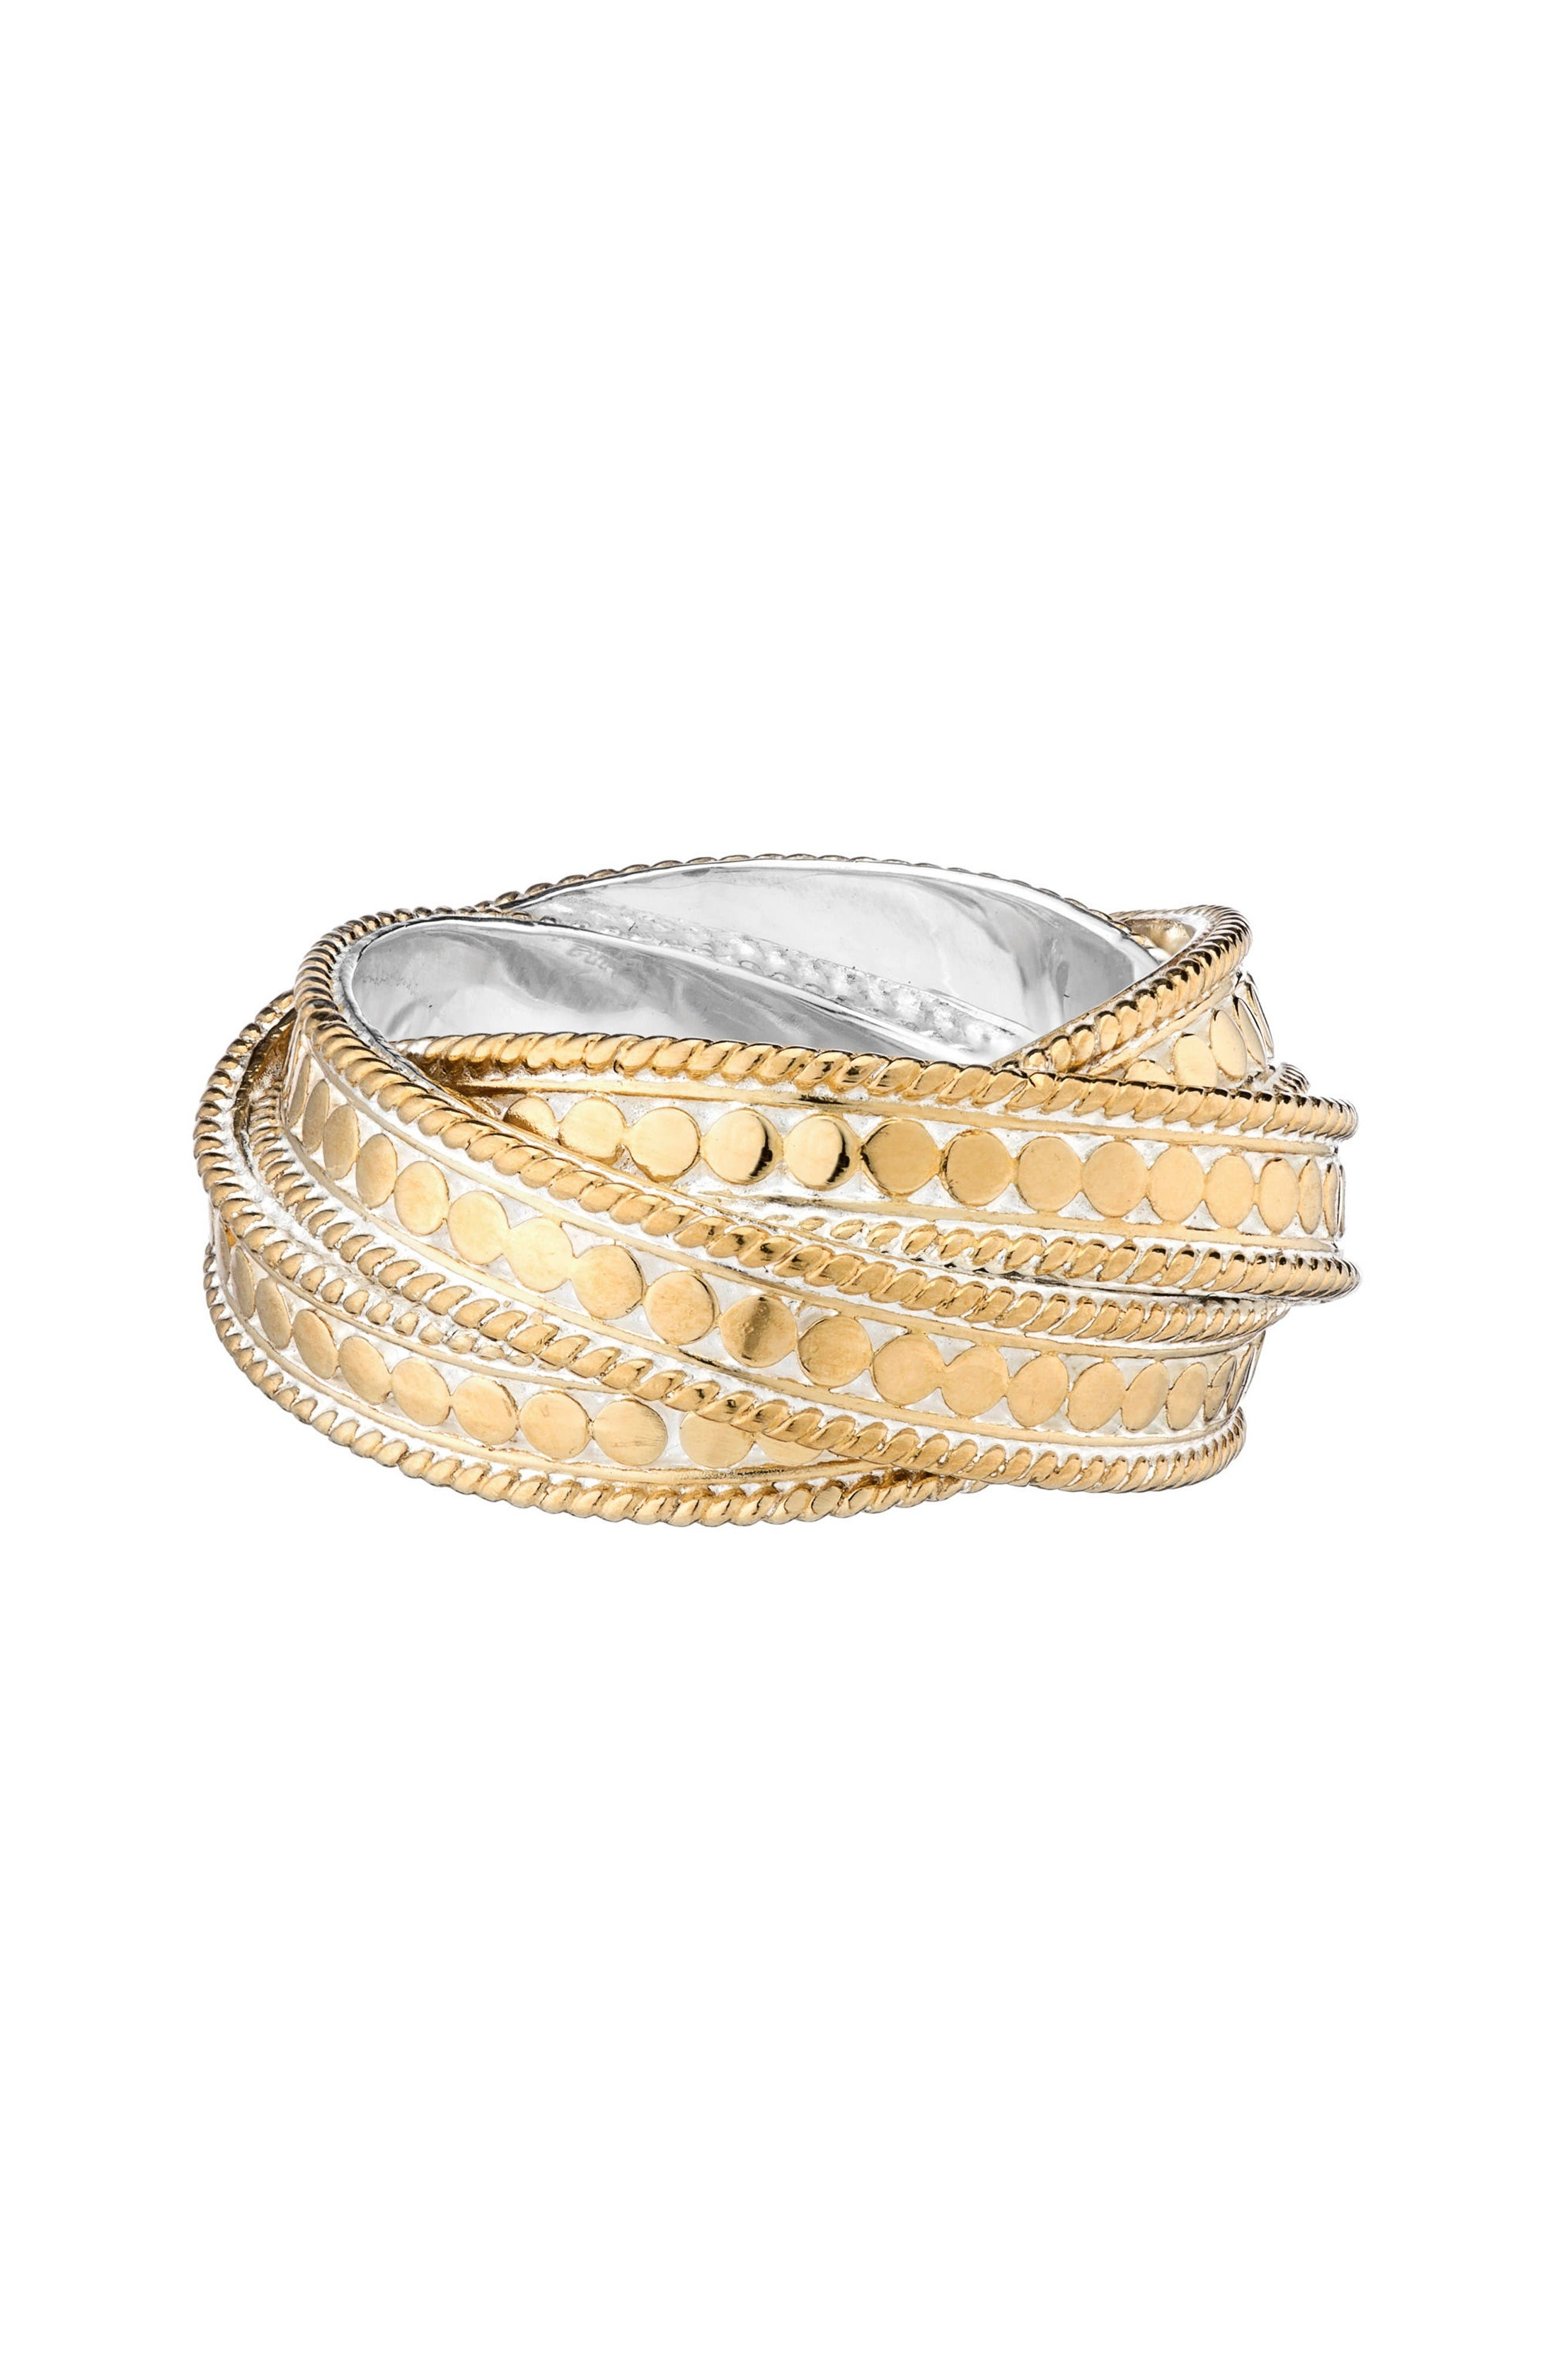 ANNA BECK 'Timor' Twist Ring (Nordstrom Exclusive) in Gold / Silver